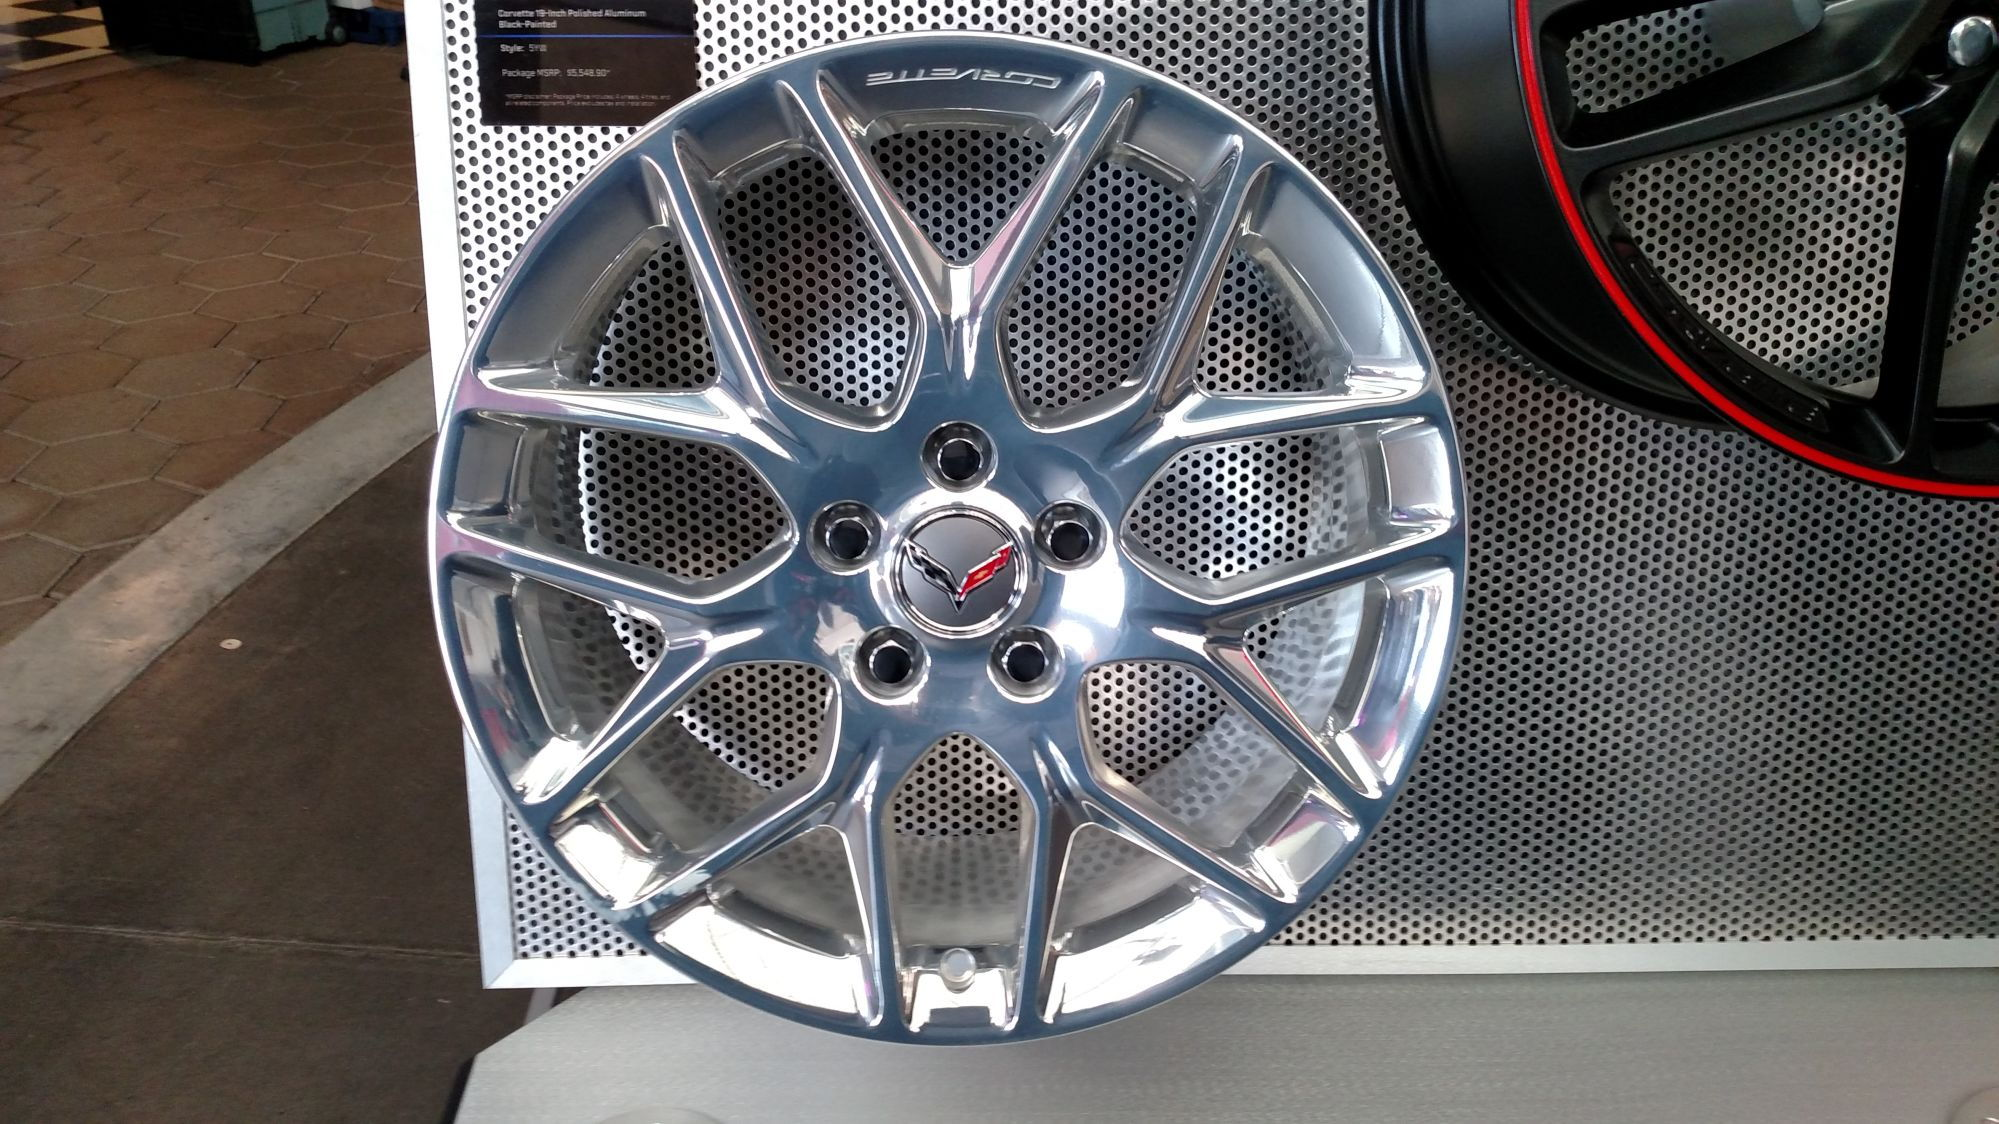 19 x 85 483 cm x 216 cm front and 20 x 10 508 cm x 254 cm rear 1 included and only available with zld twilight blue design package or - 2016 Corvette Stingray And Z06 Spice Red Design Package